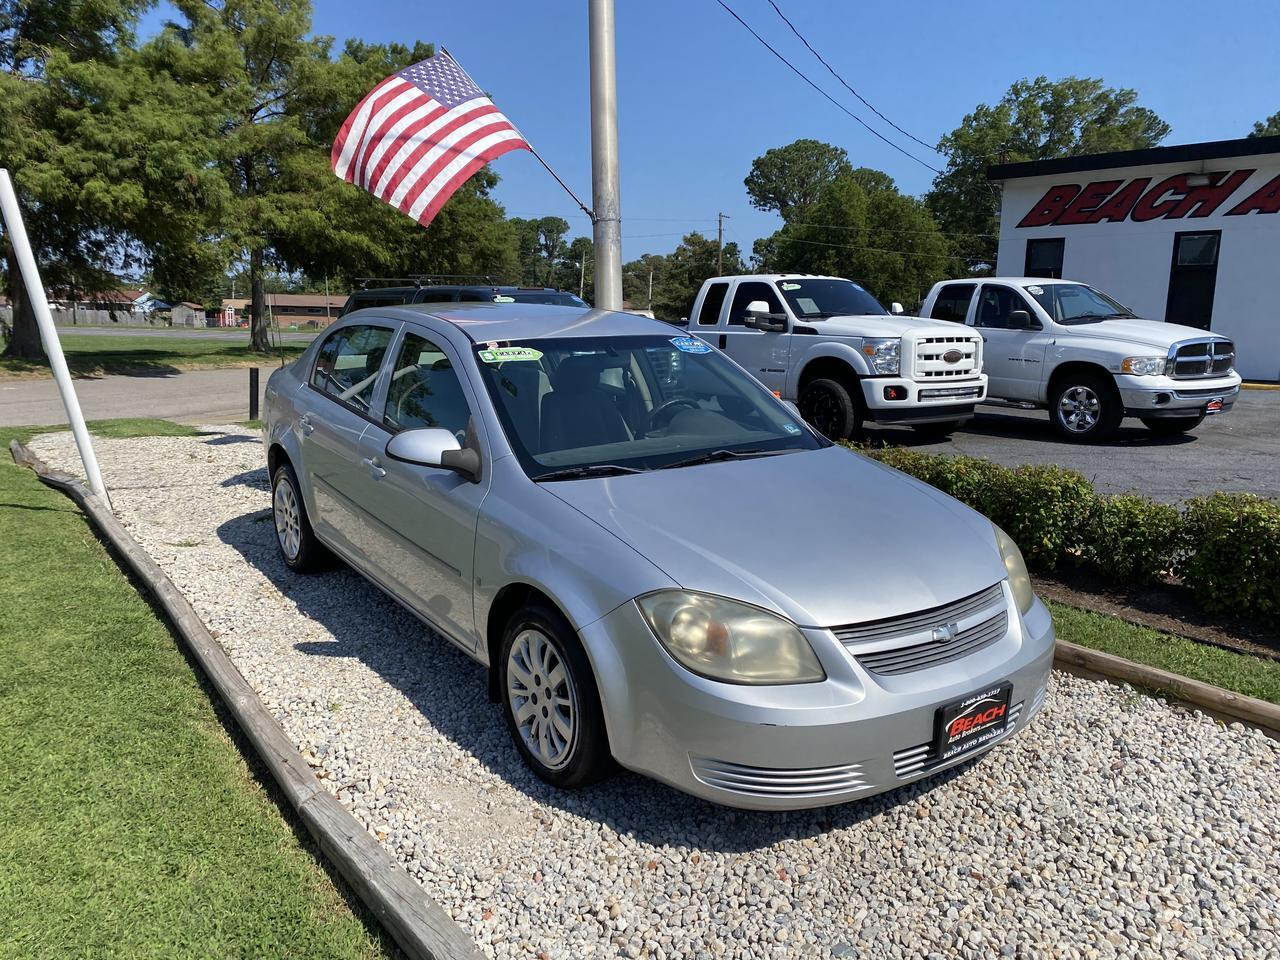 2009 CHEVROLET COBALT LT, WHOLESALE TO THE PUBLIC, AUX PORT, A/C, CRUISE CONTROL, SINGLE CD PLAYER! Norfolk VA